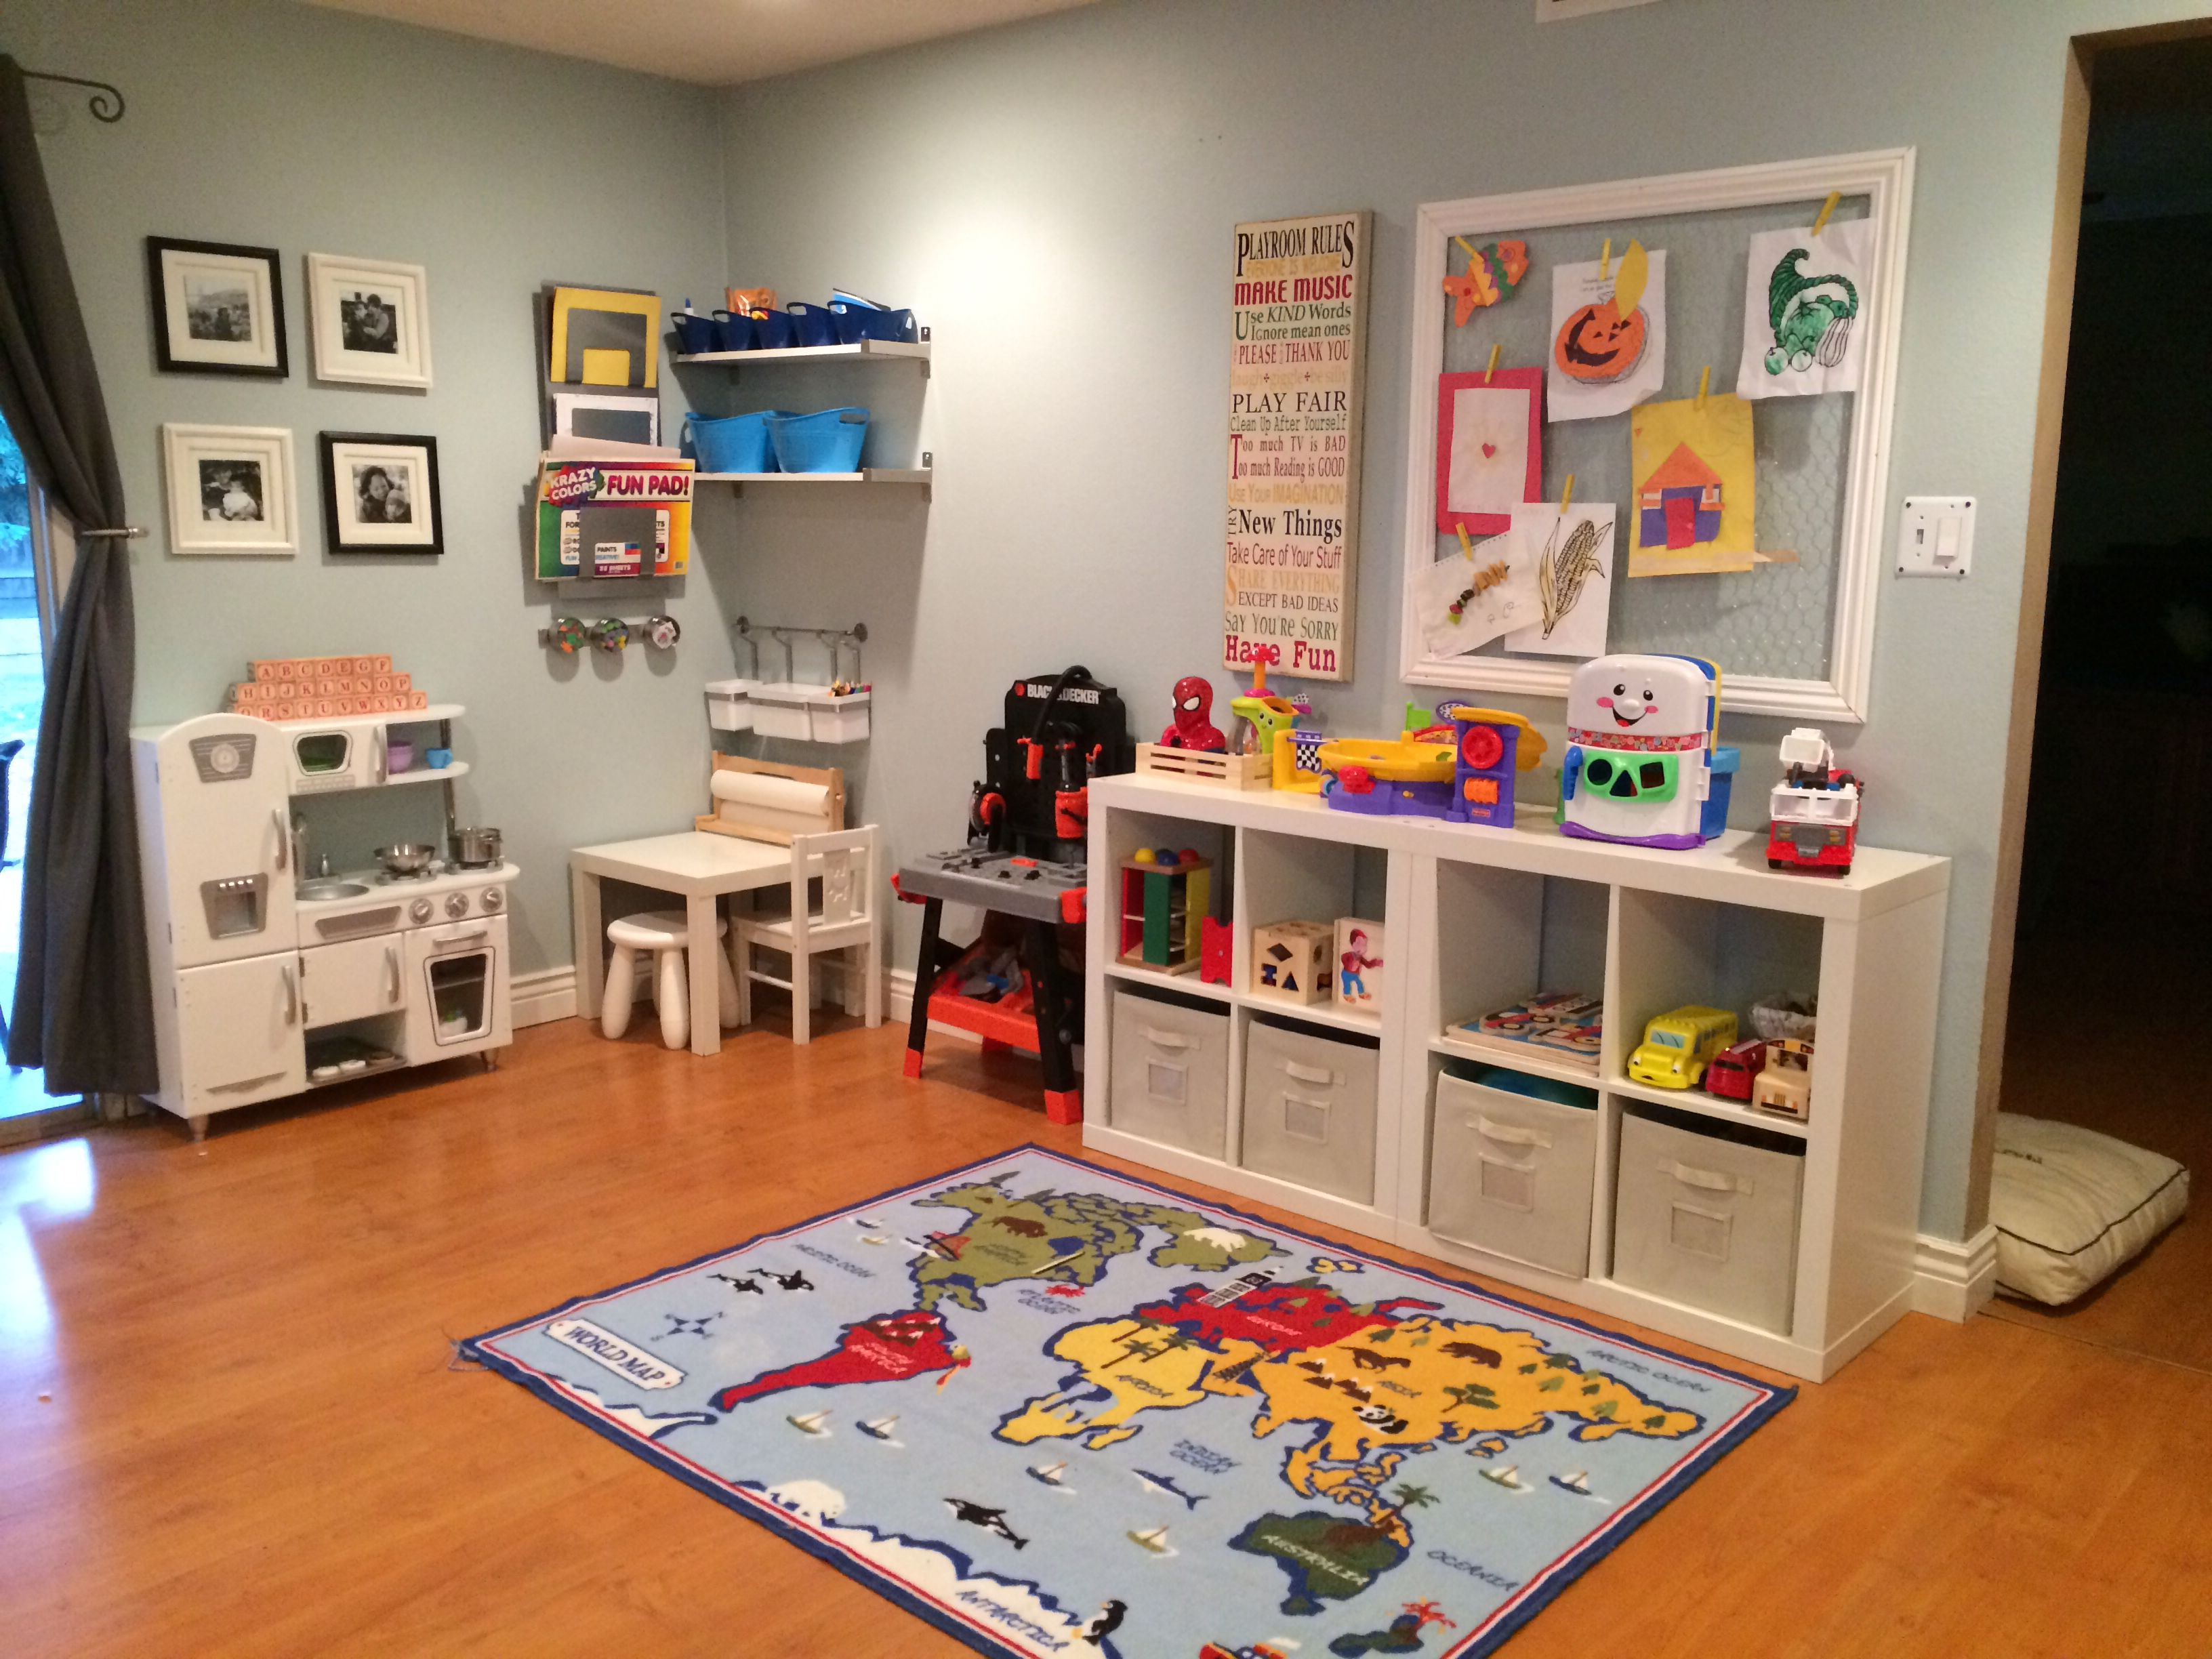 Family/Dining Room Turned Into Playroom. Pictures Of Our Son With Family  Members Who